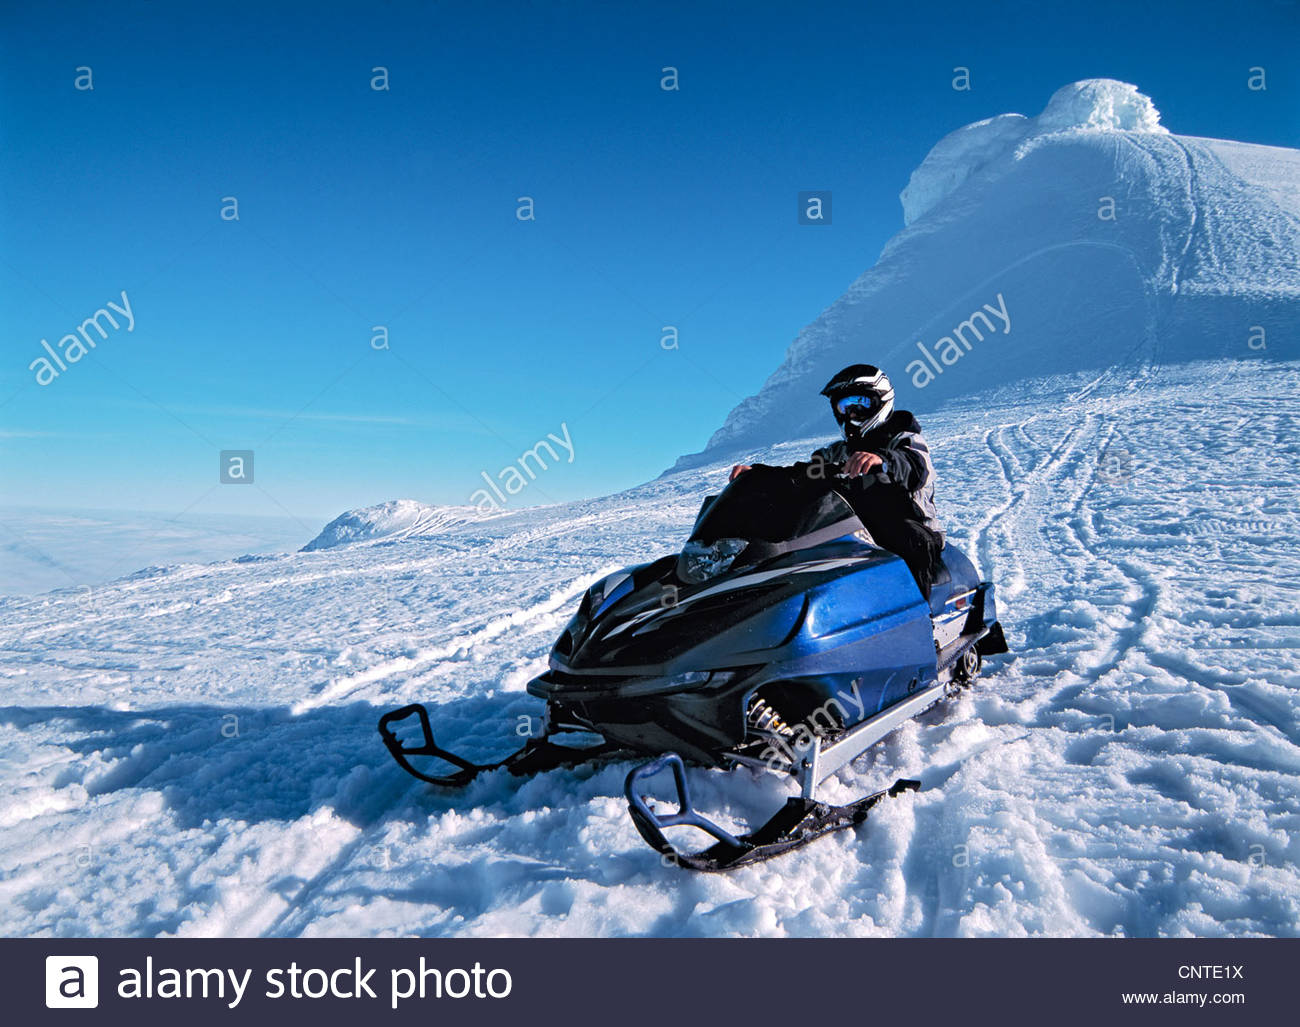 Man driving snowmobile over hill - Stock Image